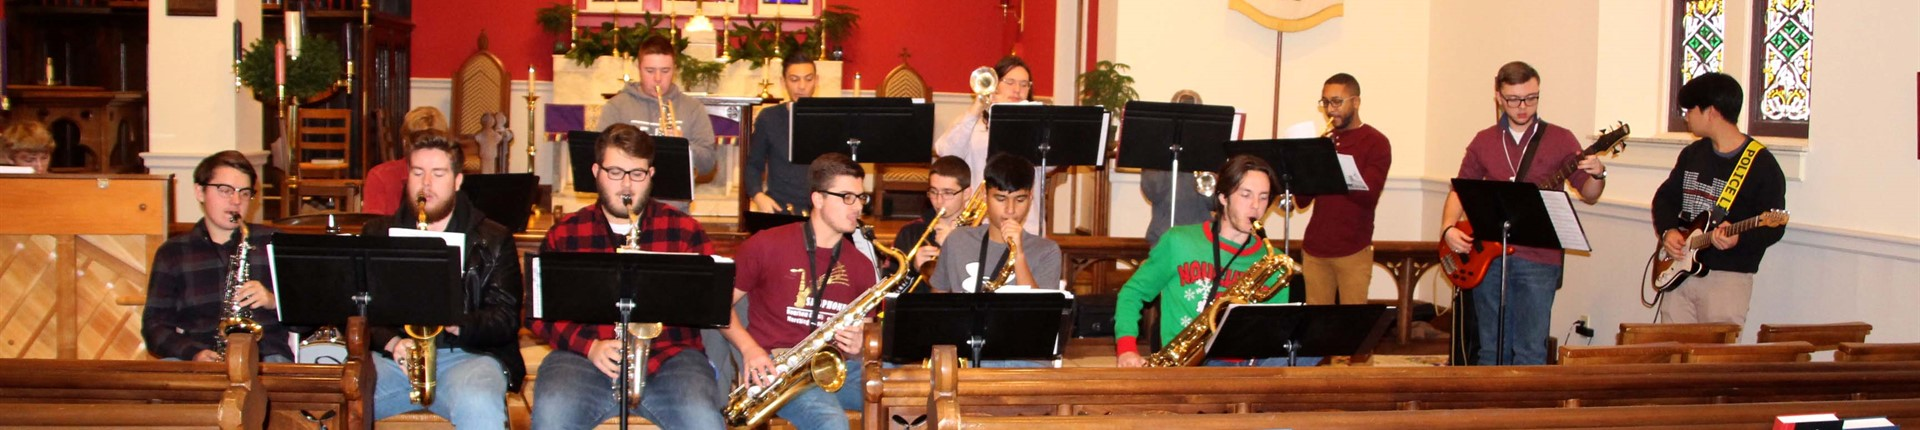 BHS Jazz Band Perform at Episcopal Church